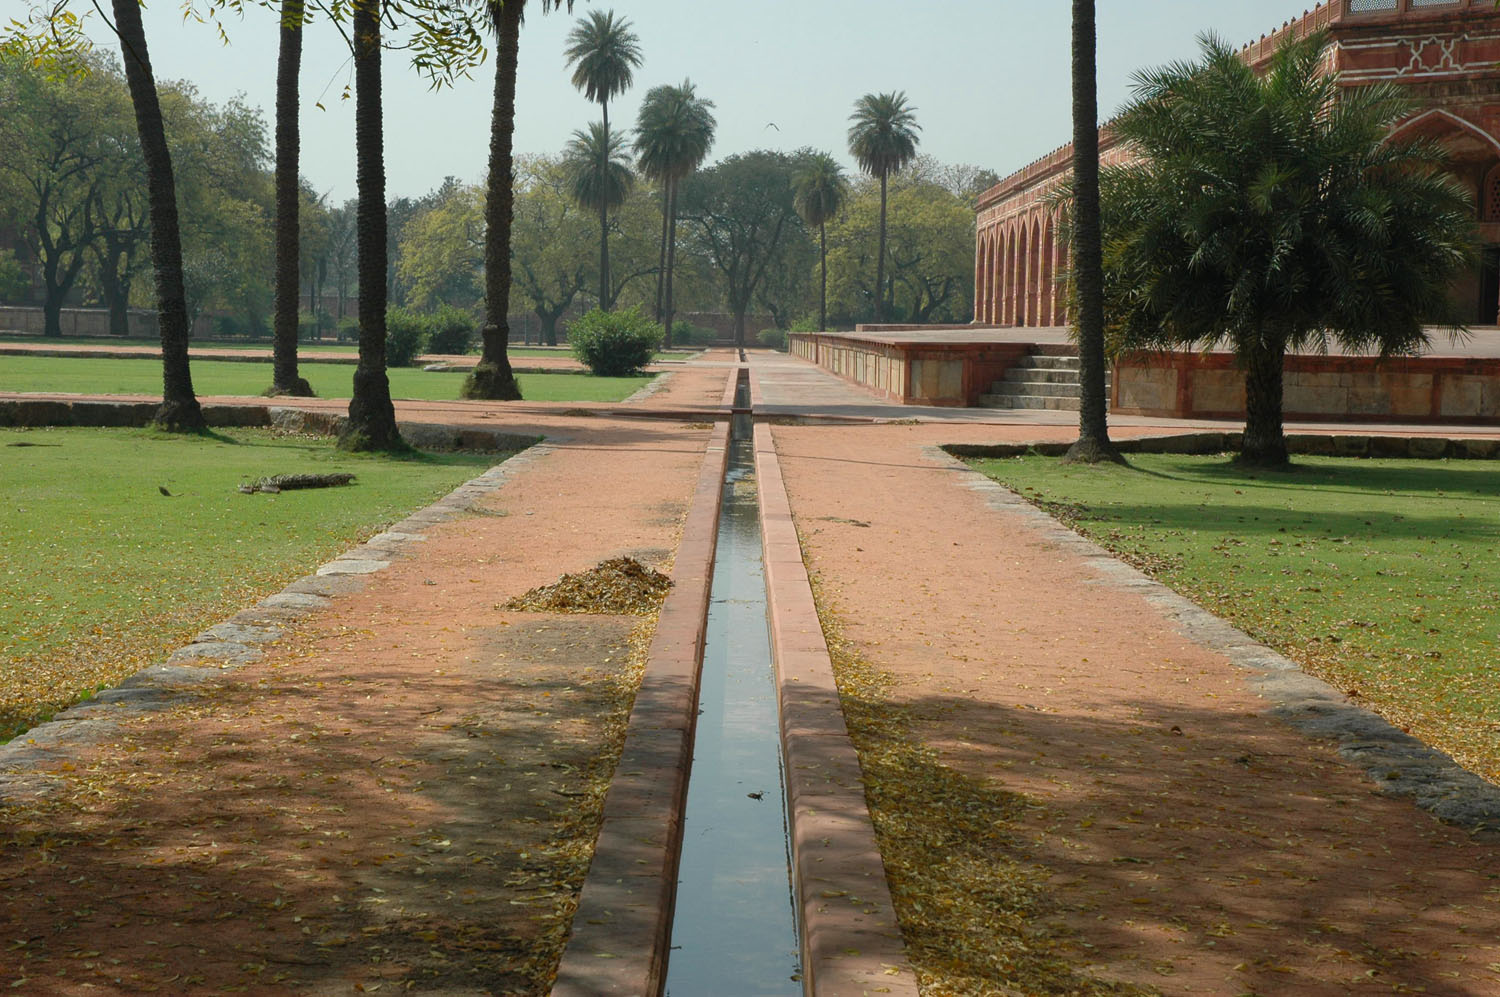 Water flow in trough surrounded by palm, Humayun's Tomb complex, New Delhi, 28 March, 2007, photograph by Gordon Brent Ingram